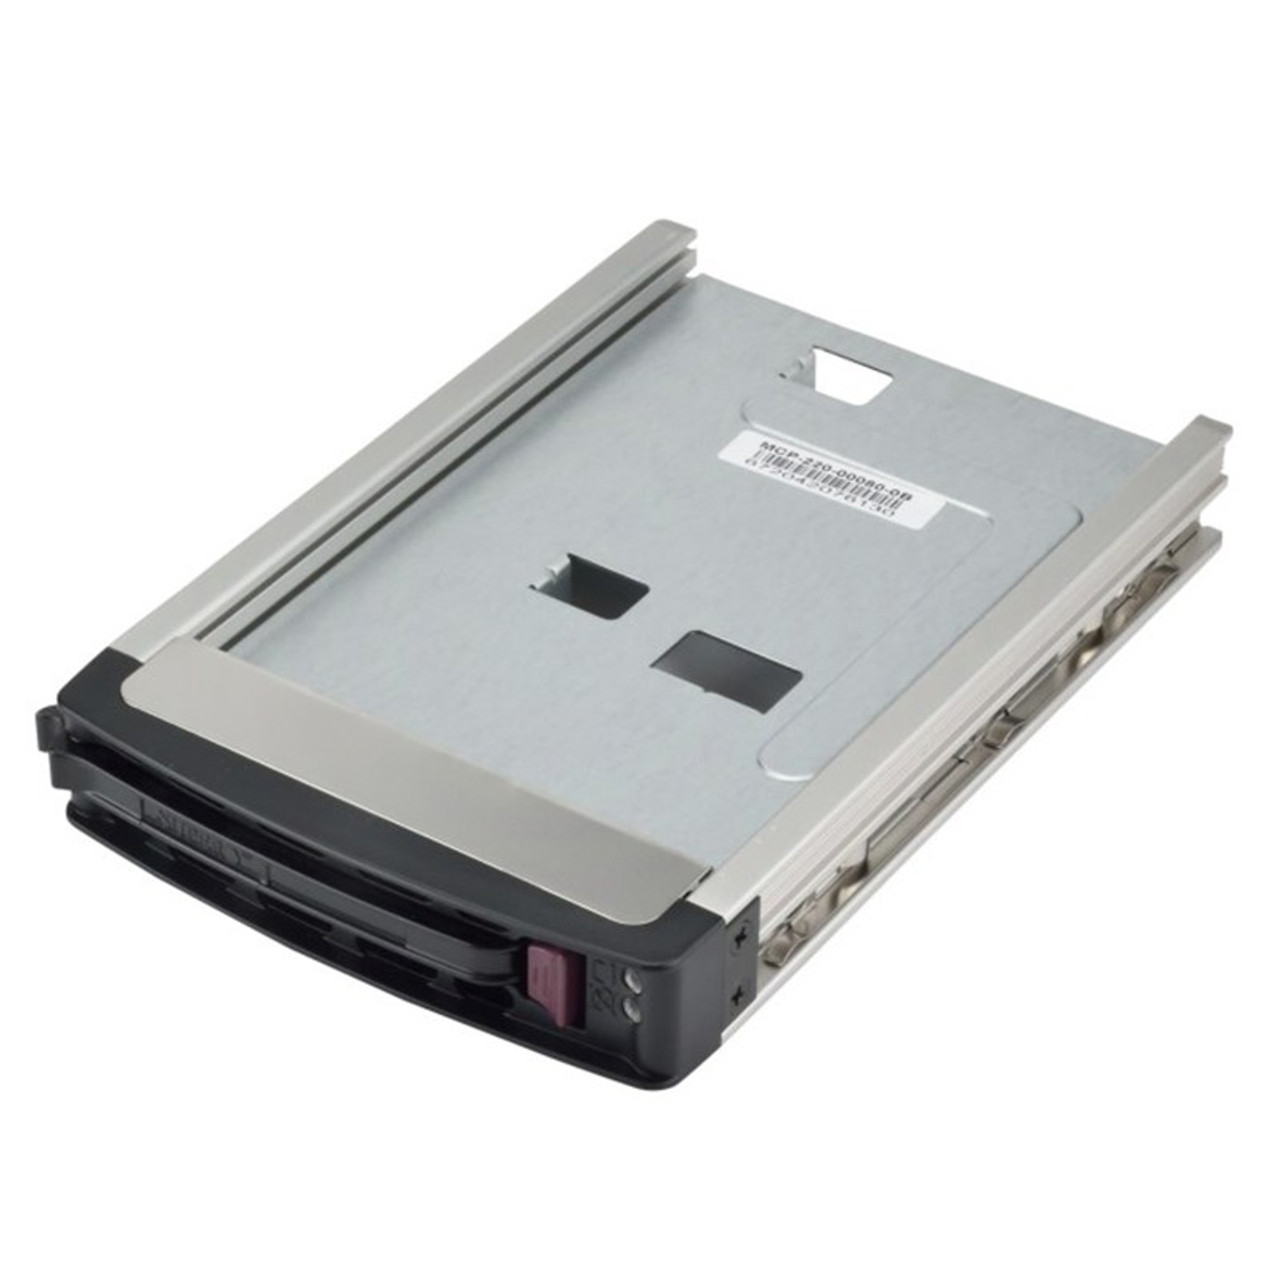 Image for SuperMicro 3.5 to 2.5 Converter Drive Tray CX Computer Superstore